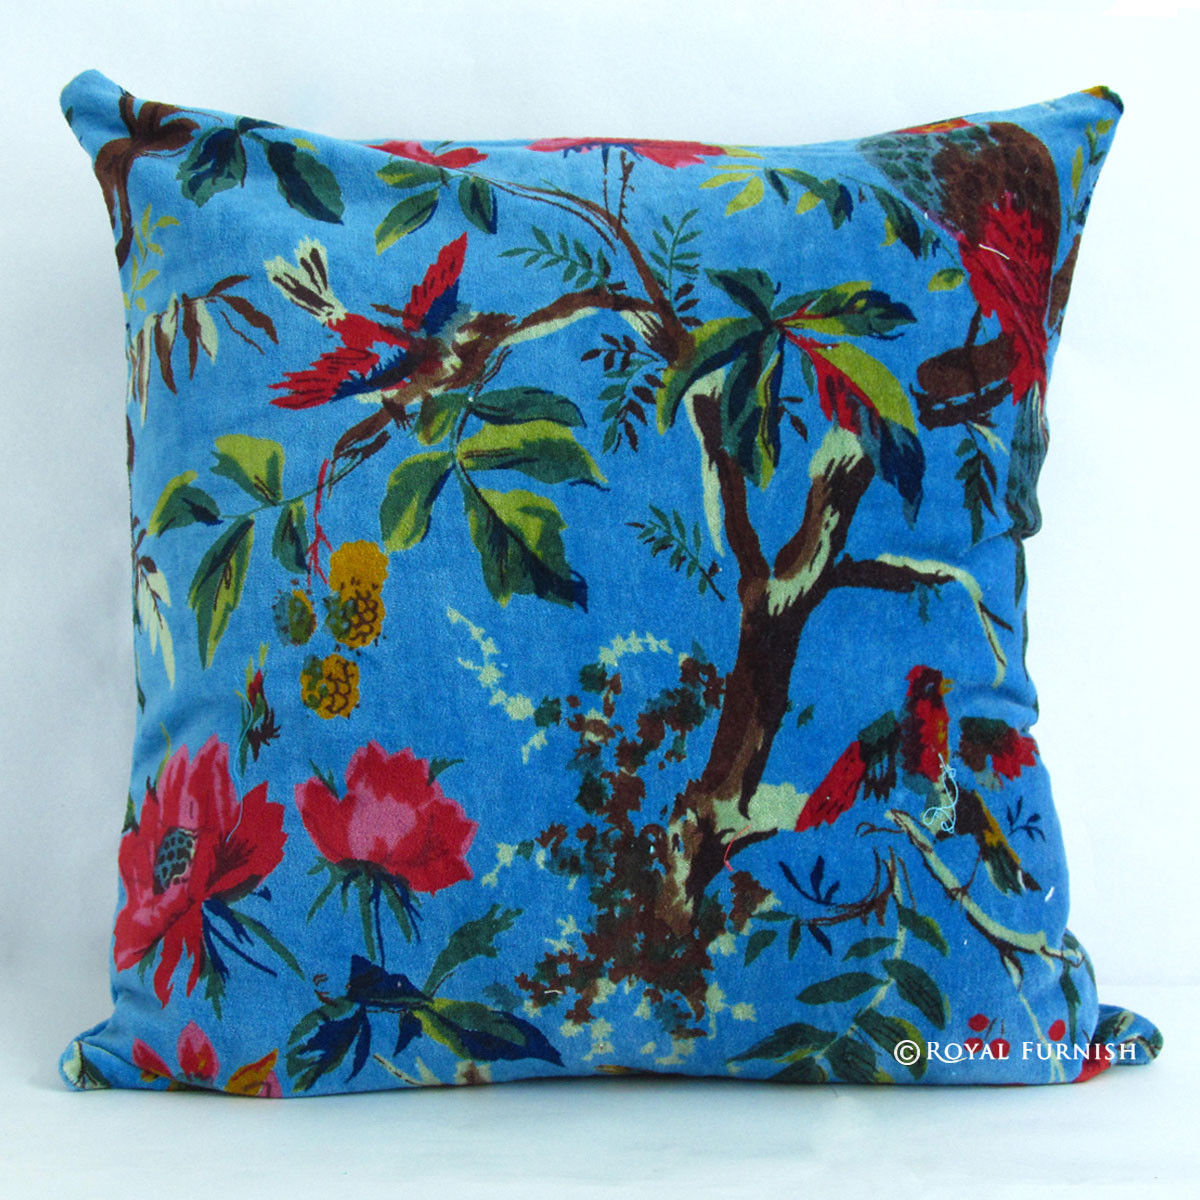 16quot Blue Indian Cushion Pillow Covers Case Velvet Bird  : 766546 from www.royalfurnish.com size 1200 x 1200 jpeg 311kB